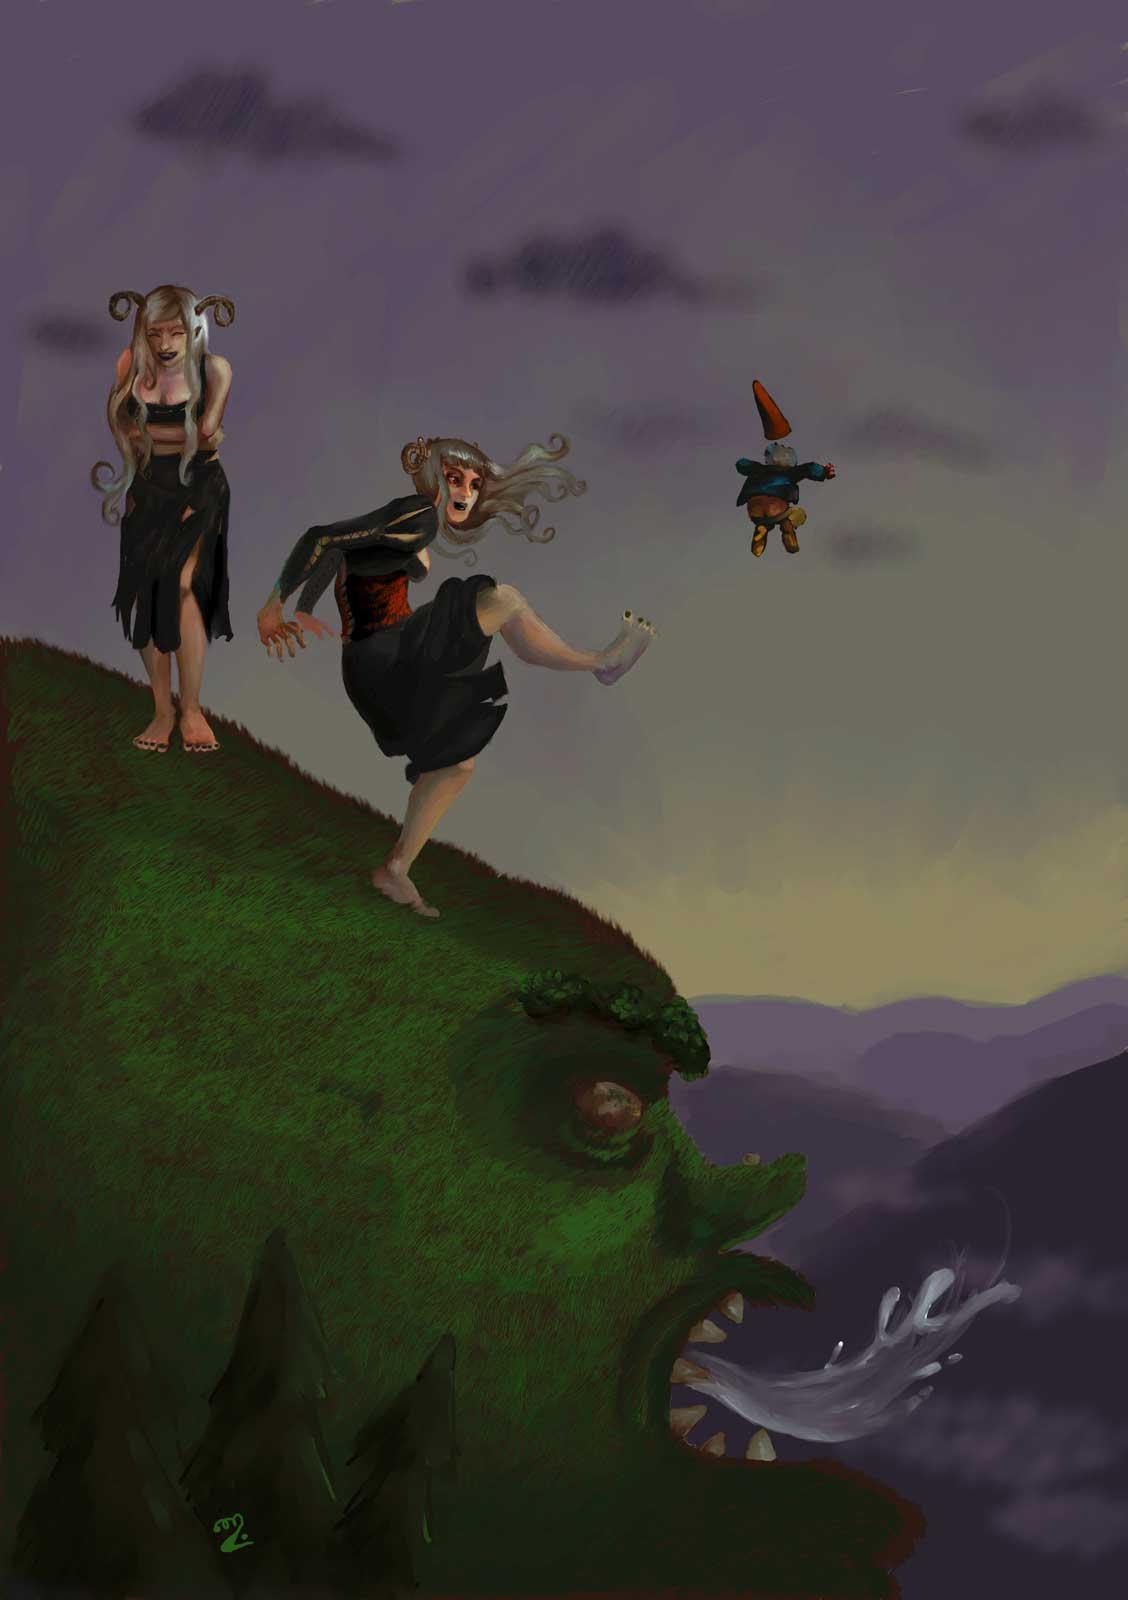 Two bad fairies (gwyllions) throwing a gnome from the grassy top of a hungry mountain troll.